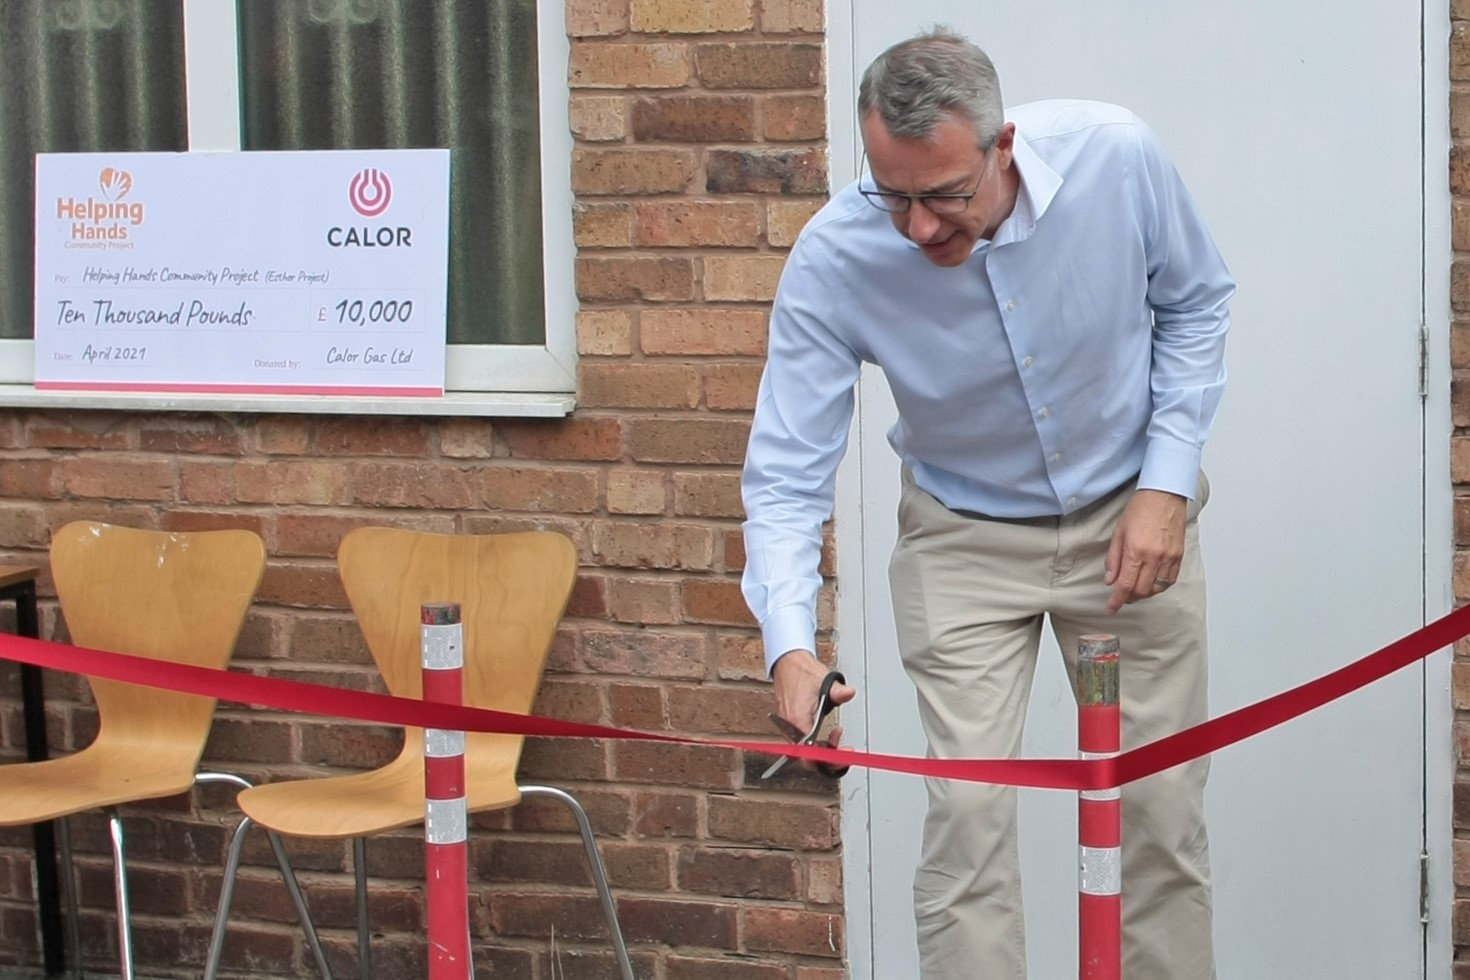 Mathew Hickin CEO of Calor cutting the ribbon of the new Helping Hands centre in Leamington